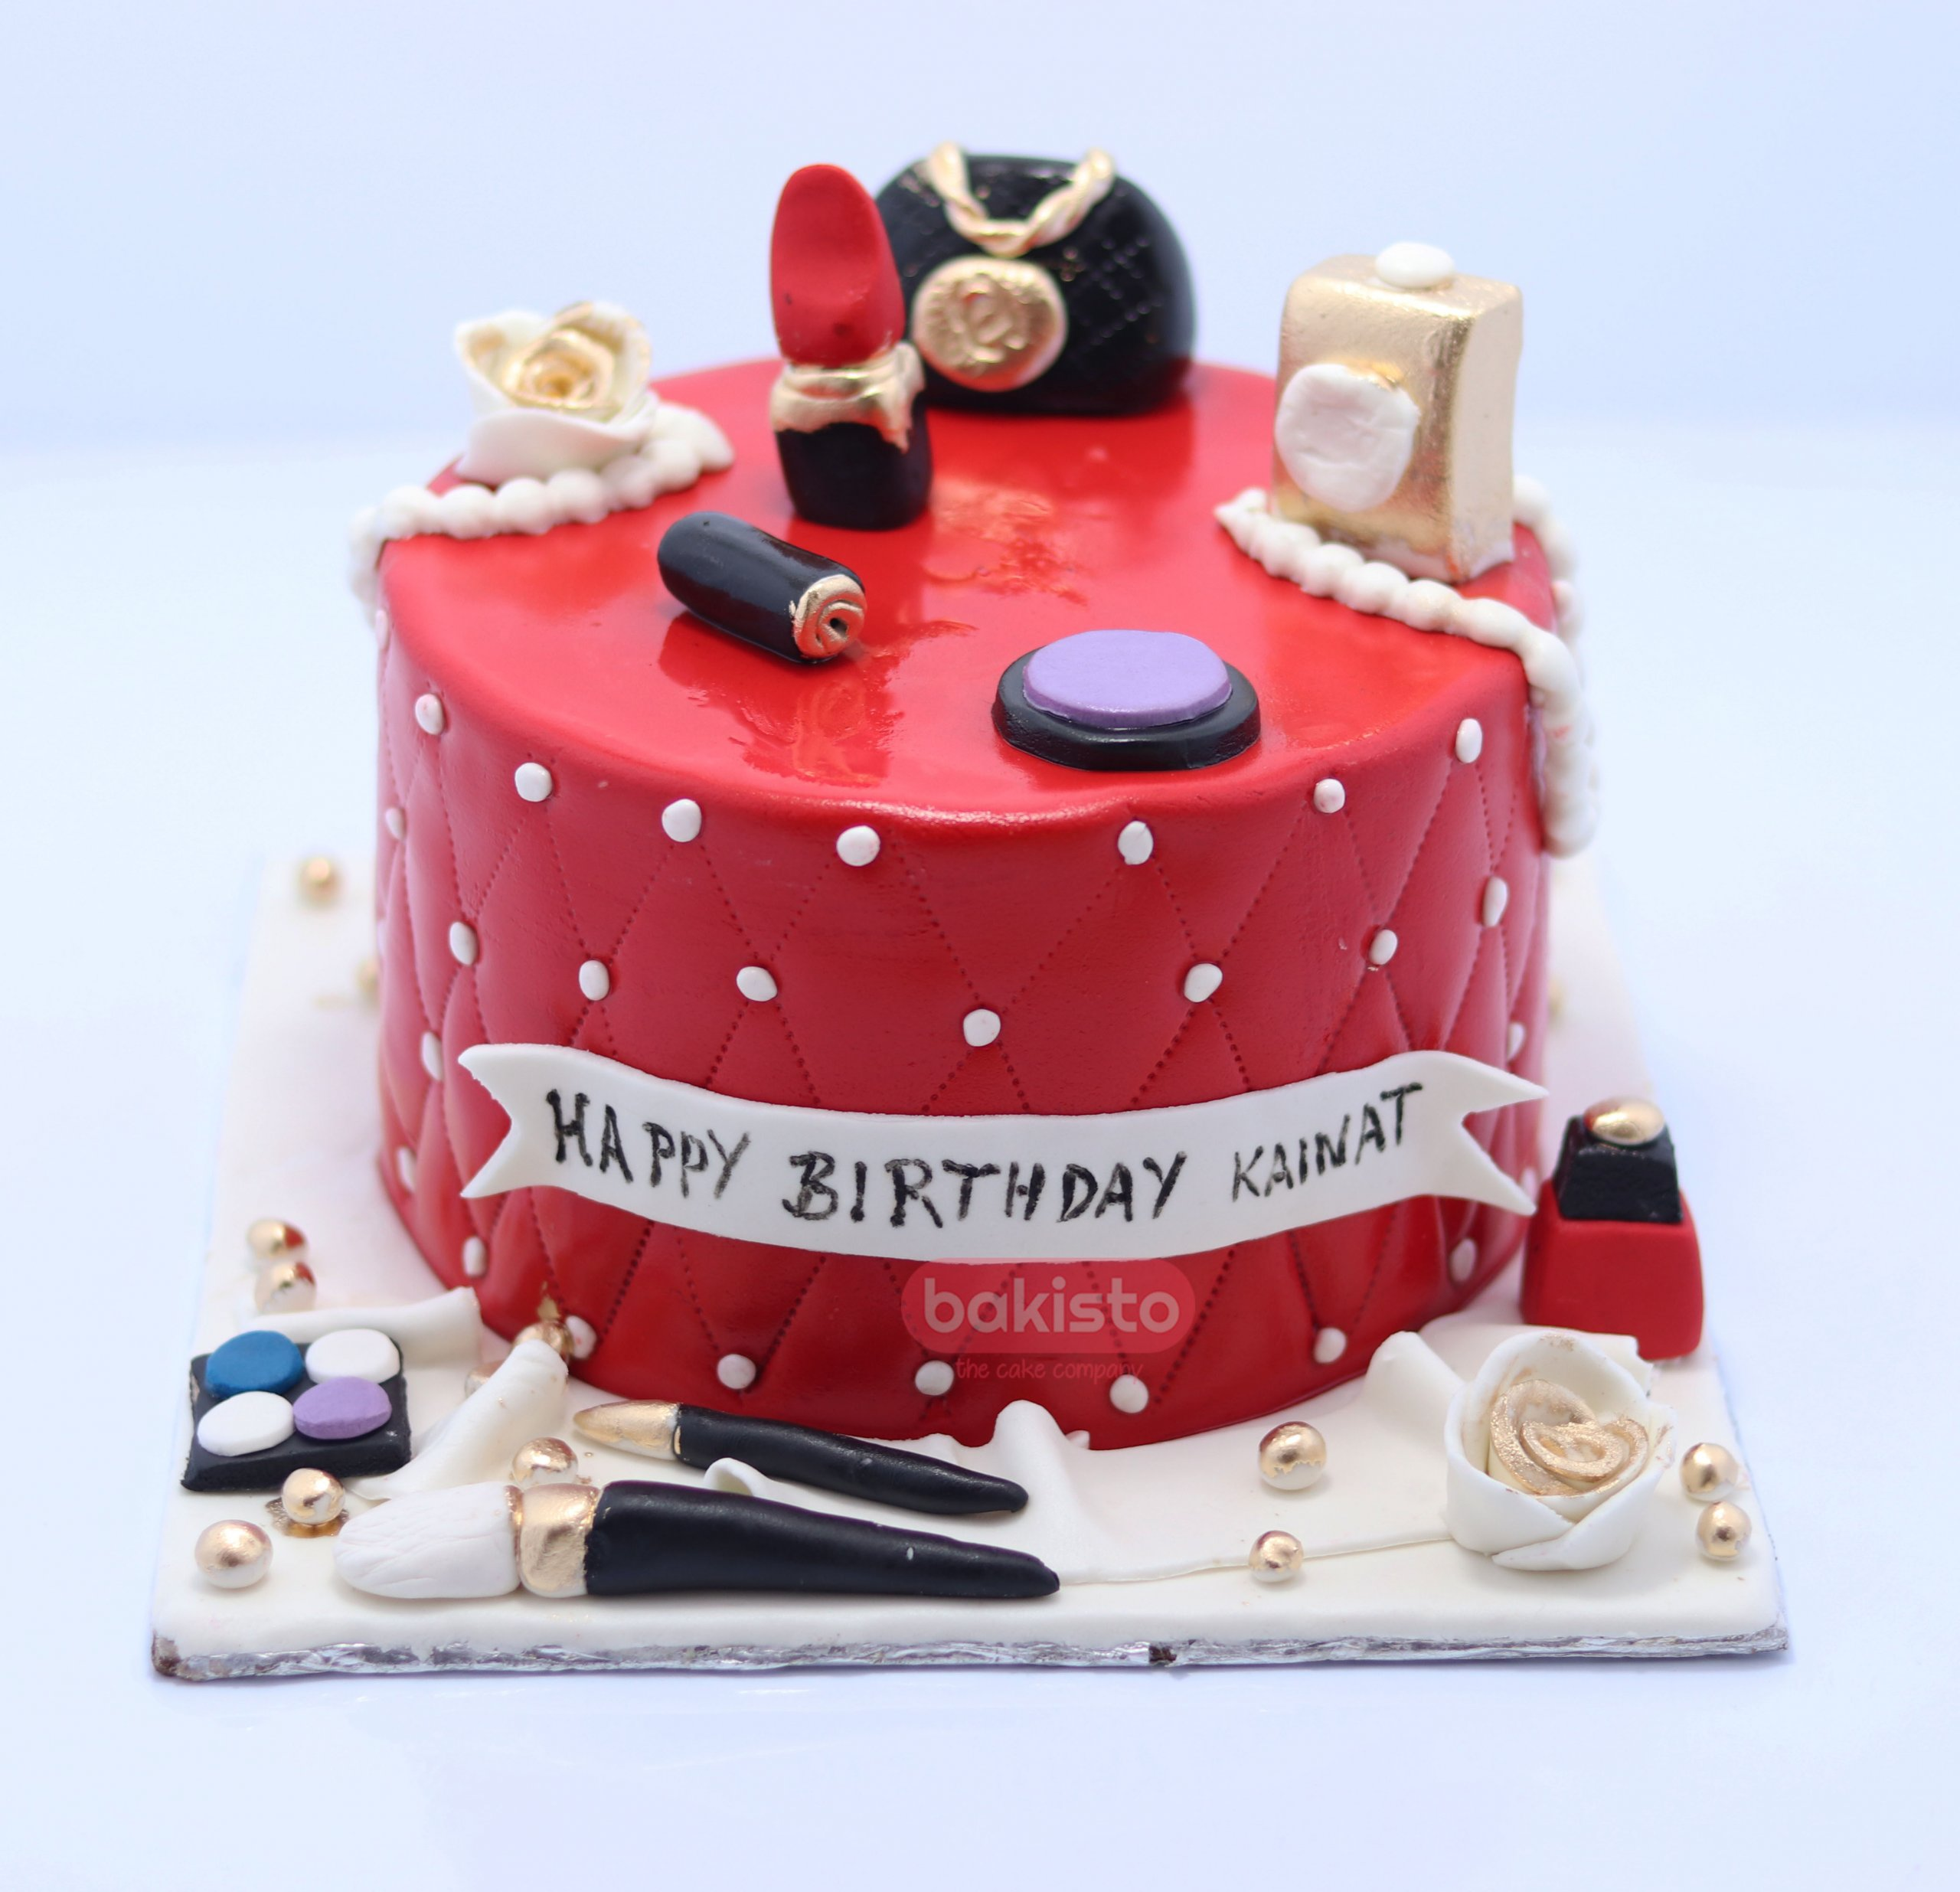 Swell Red Makeup Birthday Cake Bakisto Pk Lahore Free Delivery Birthday Cards Printable Benkemecafe Filternl